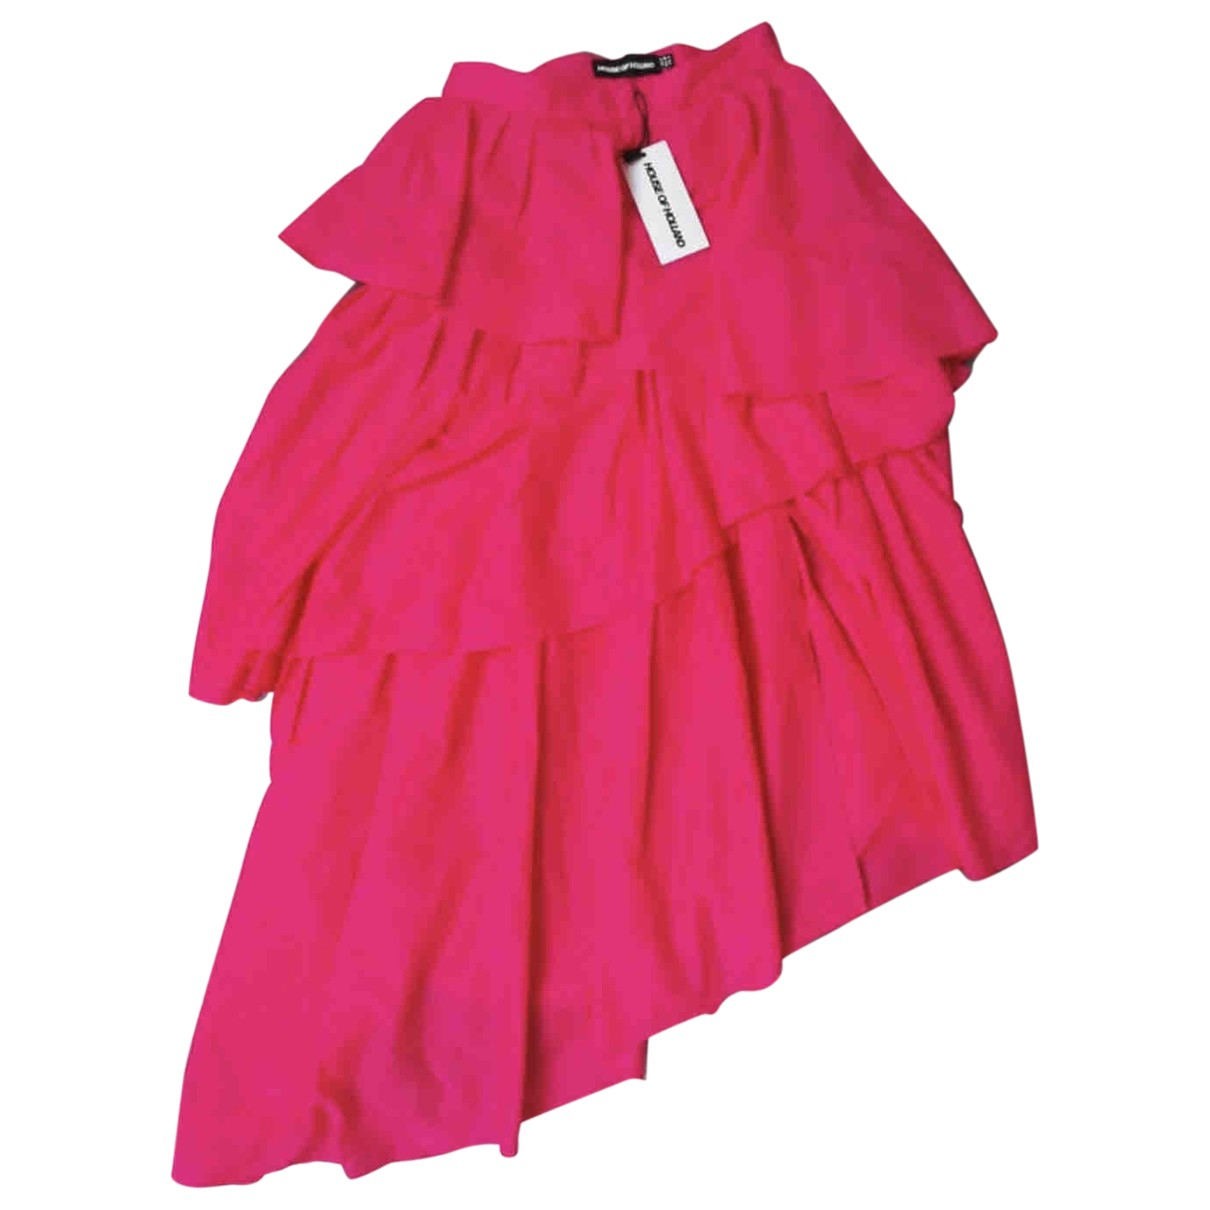 House Of Holland \N Pink skirt for Women XS International